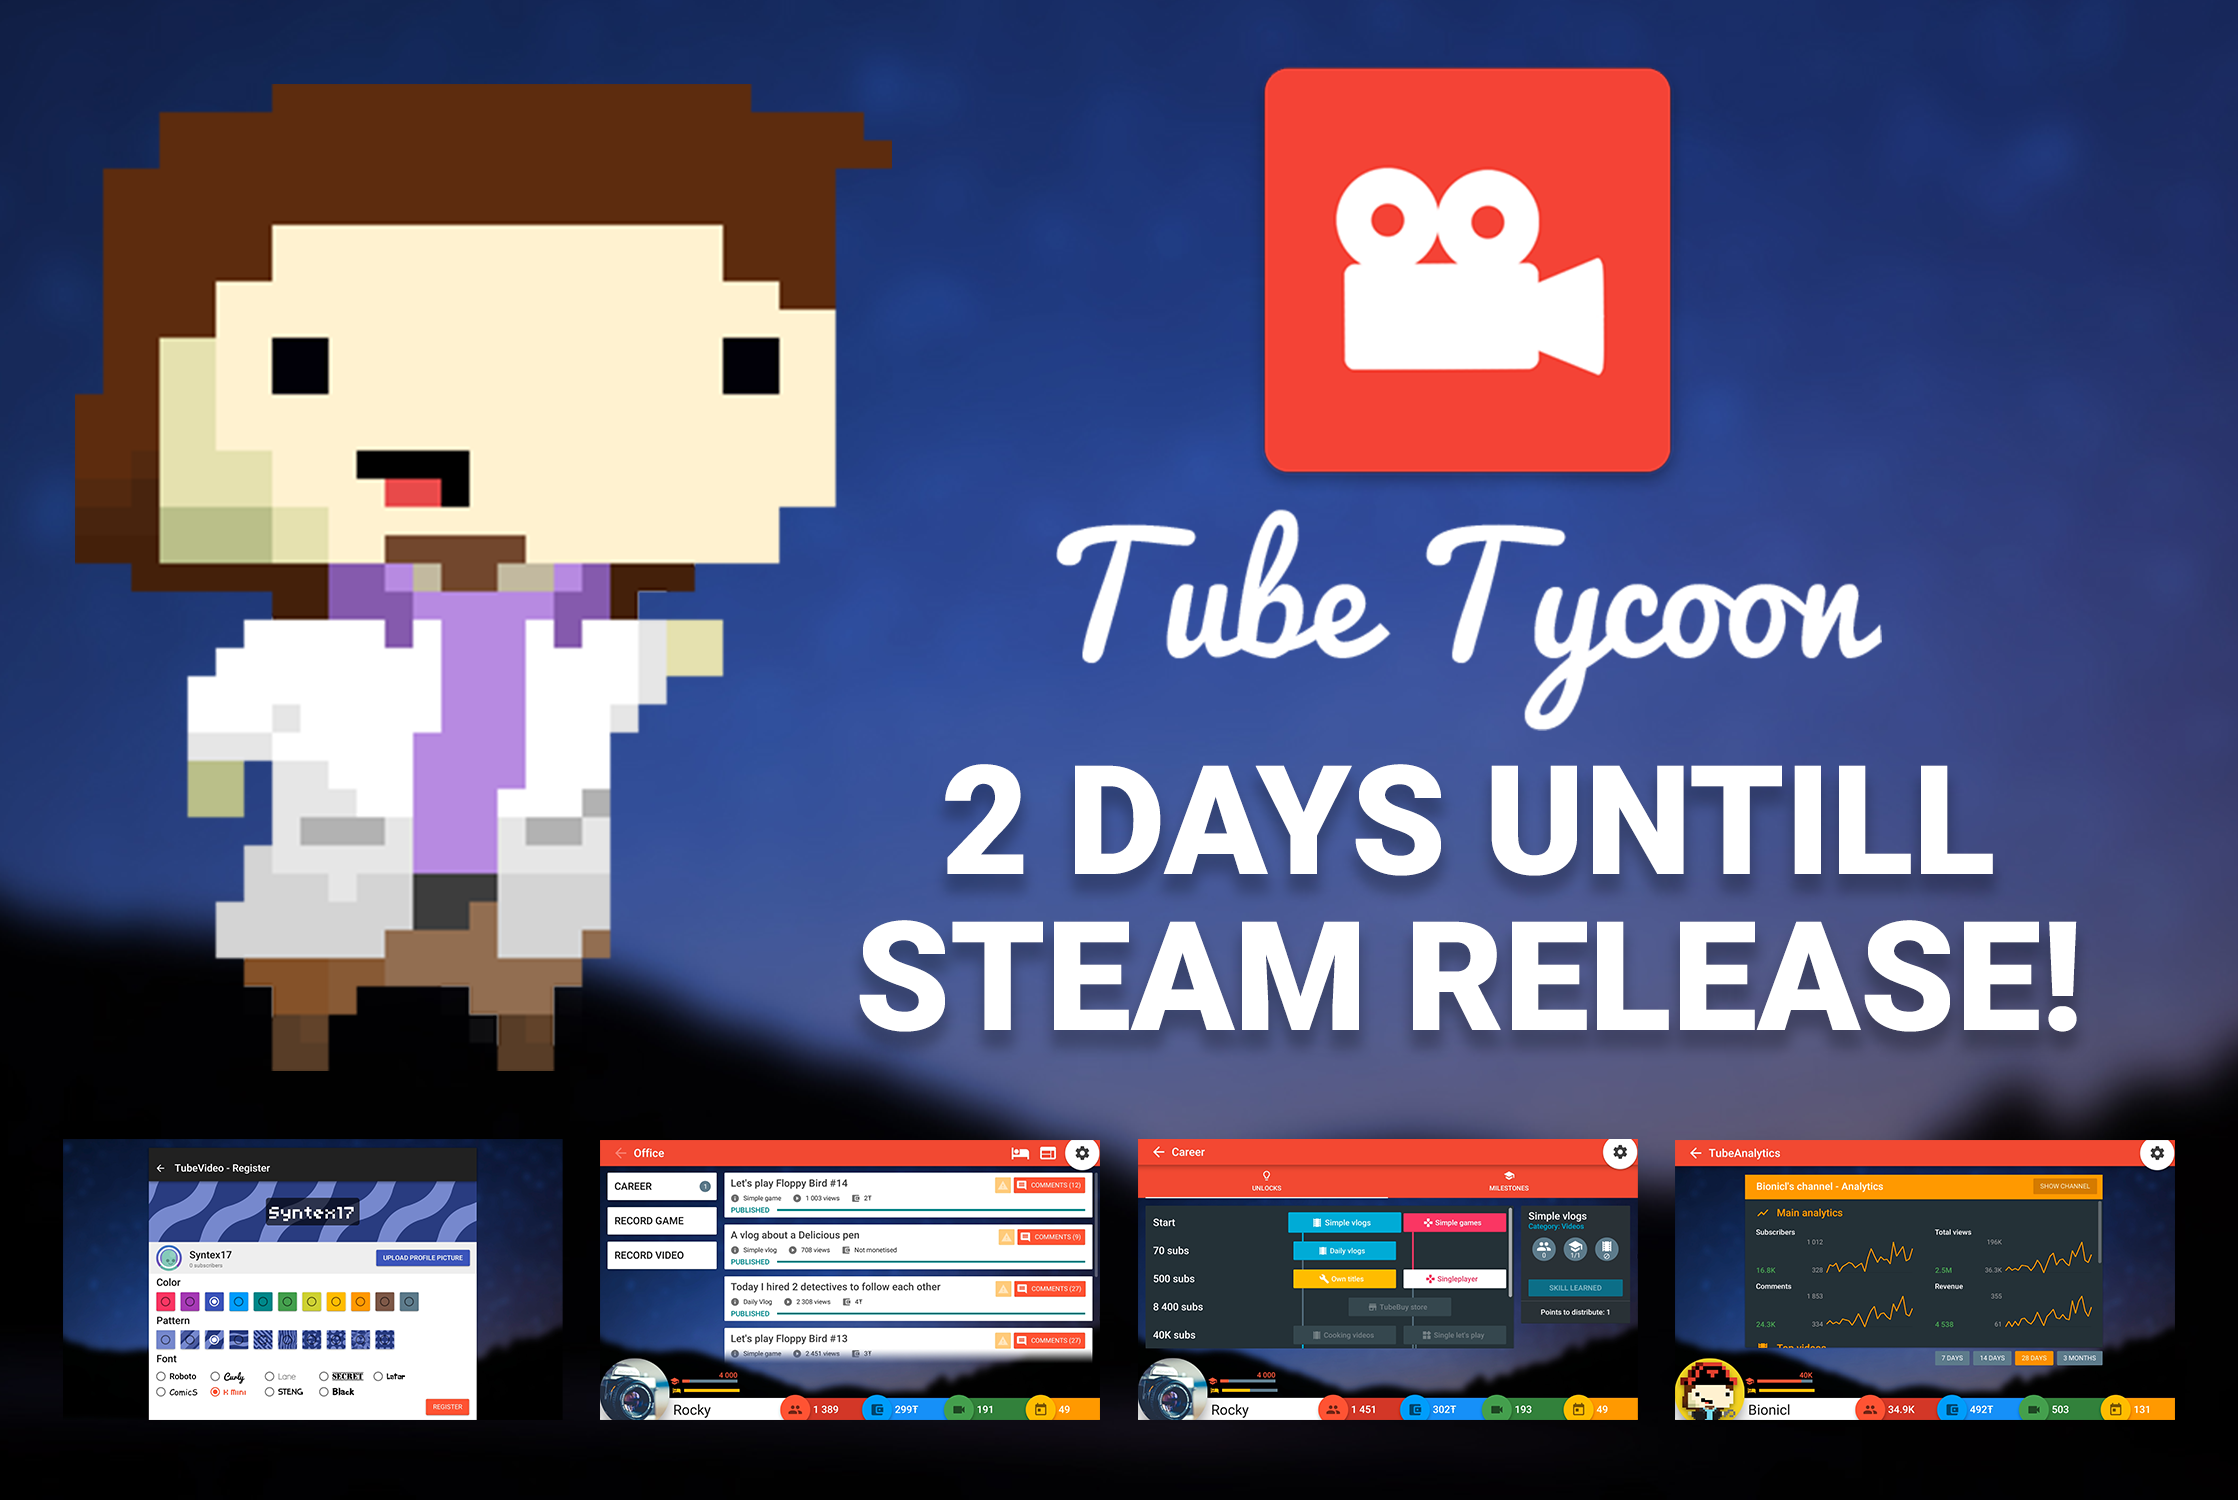 Tube tycoon game